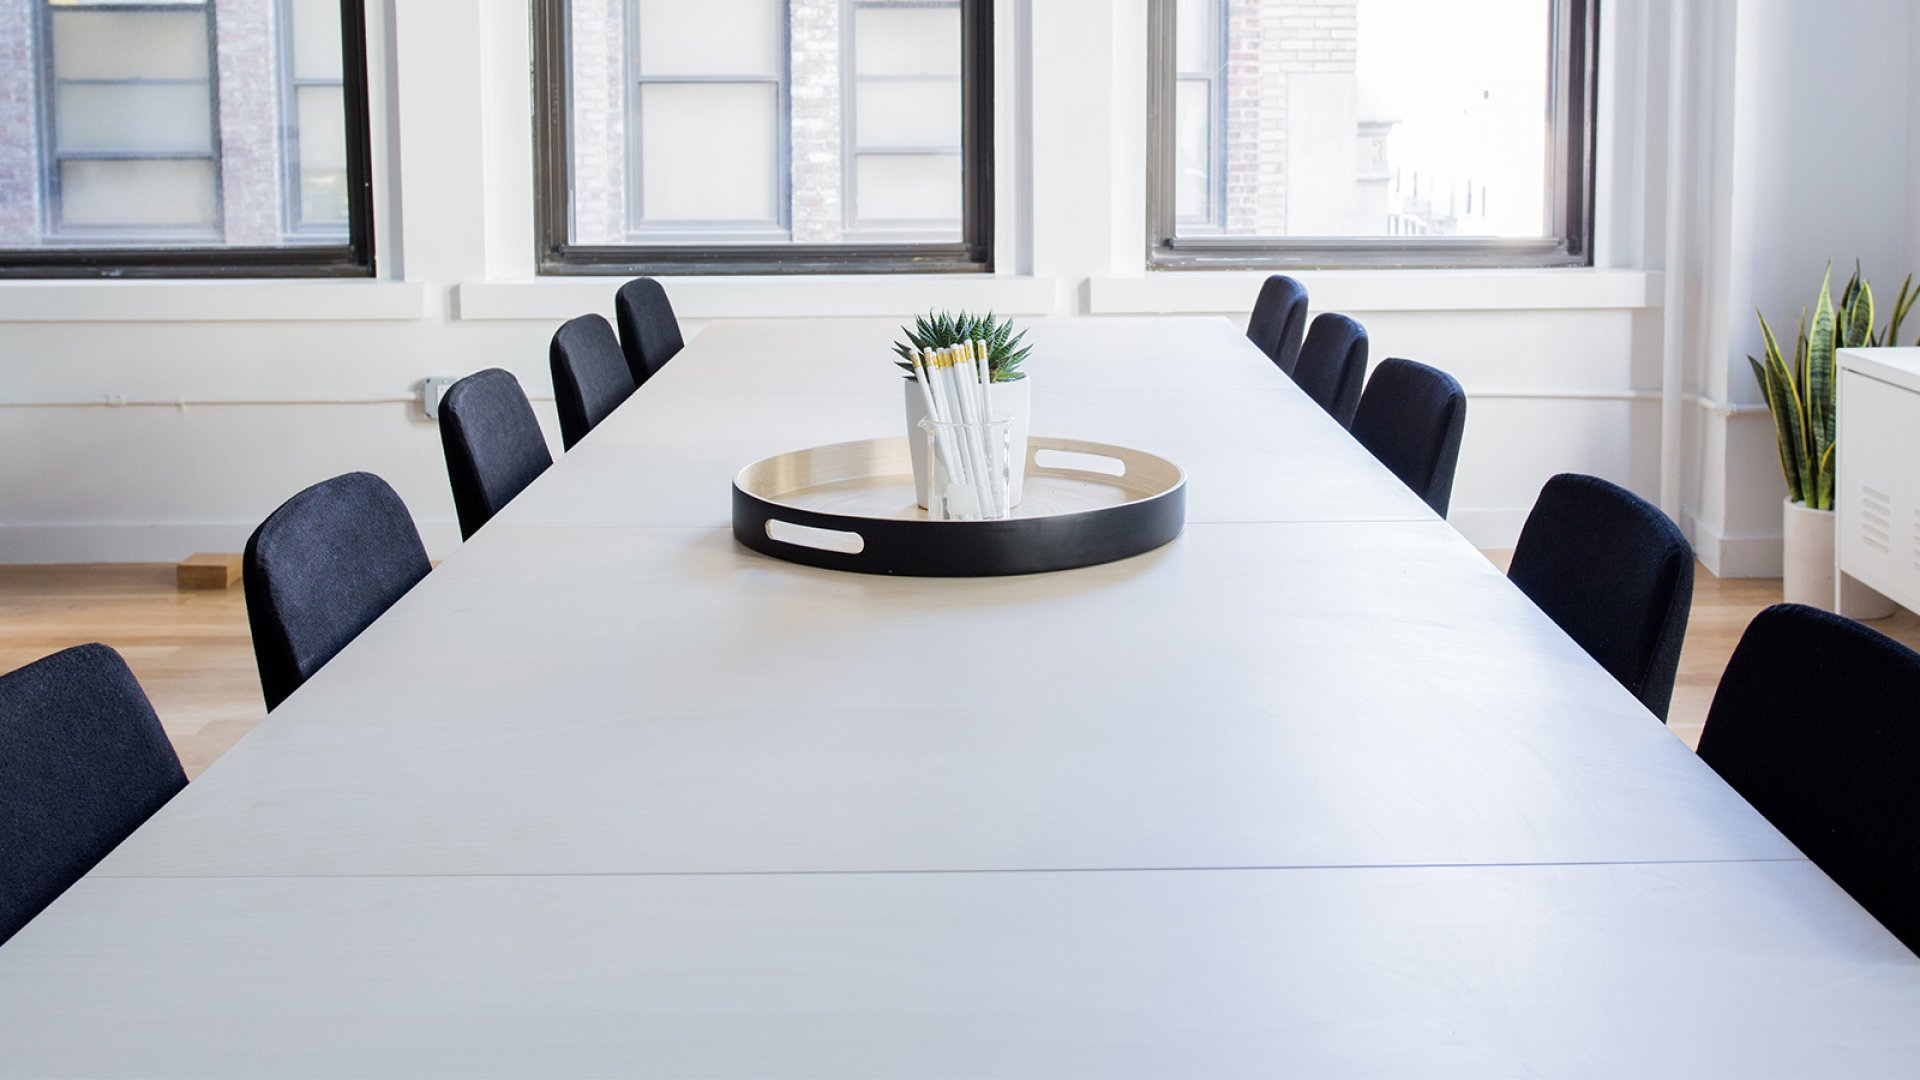 This 1 Hour is the Only Time You Should Schedule a Team Meeting